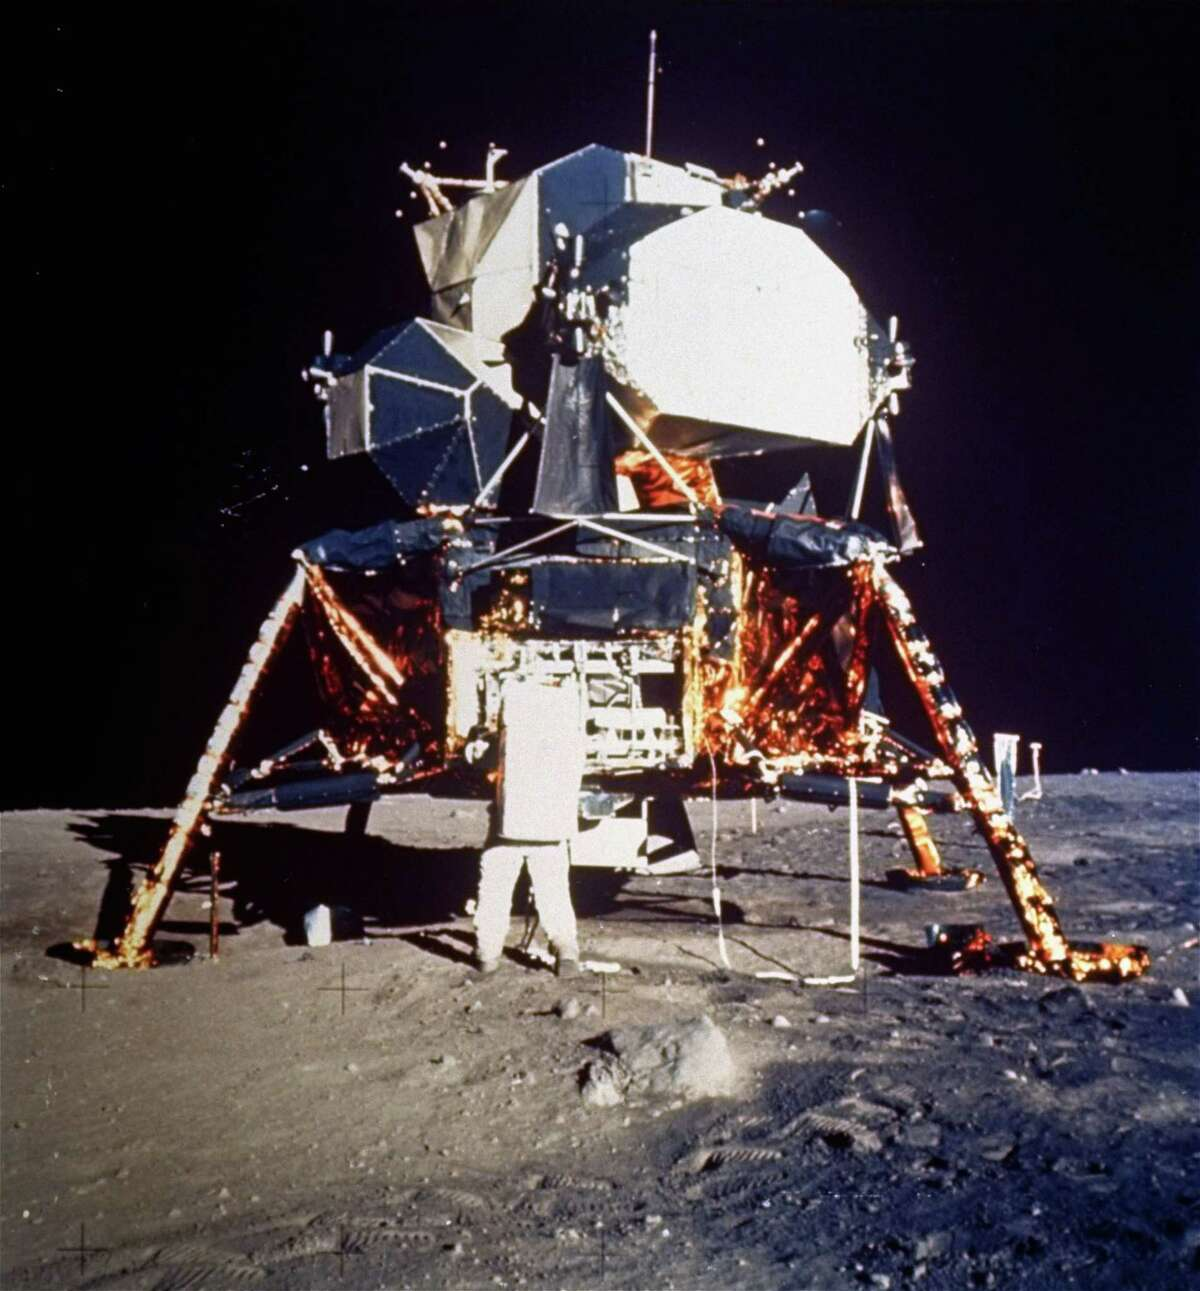 In this historic photo, Astronaut Buzz Aldrin prepares to deploy the Early Apollo Scientific Experiments Package (EASEP) during the Apollo II lunar surface extravehicular activity on July 20, 1969. Astronaut Neil A. Armstrong took the photograph with a 70mm lunar surface camera.